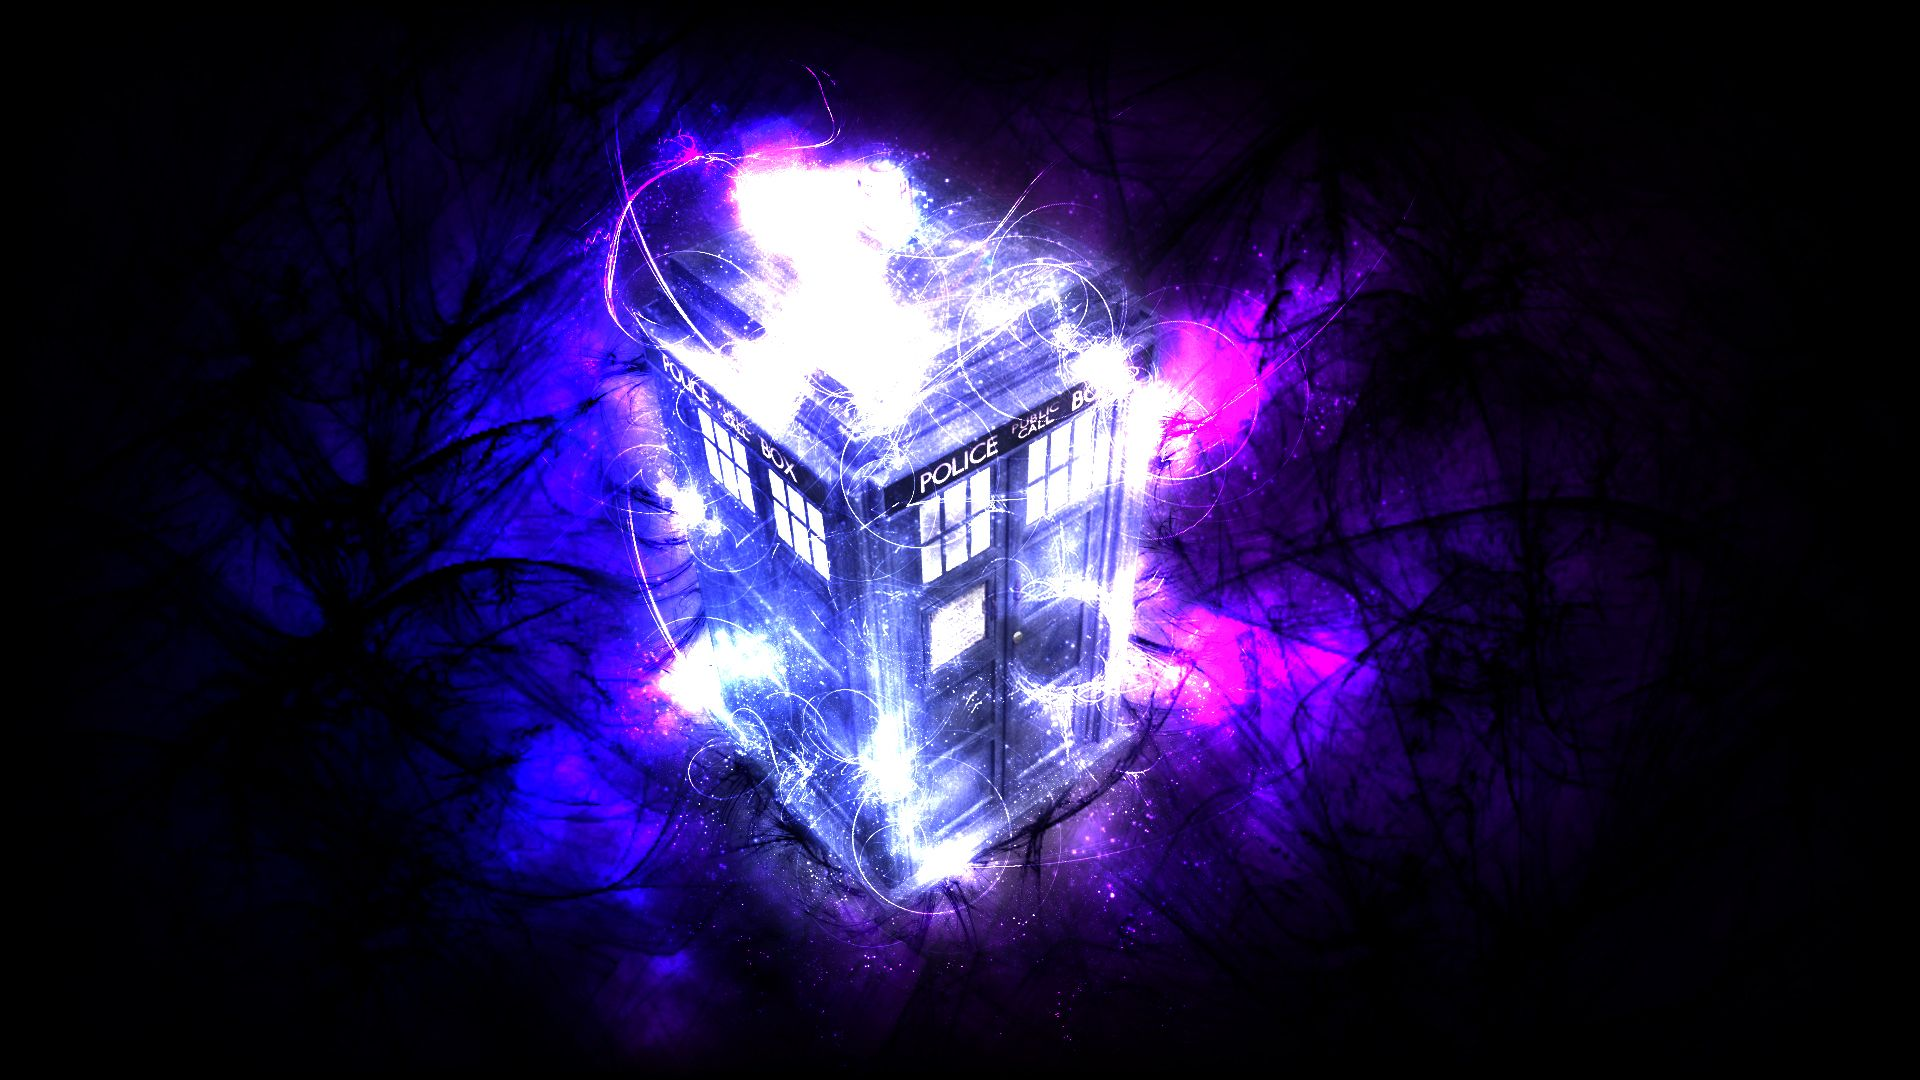 dr who images free